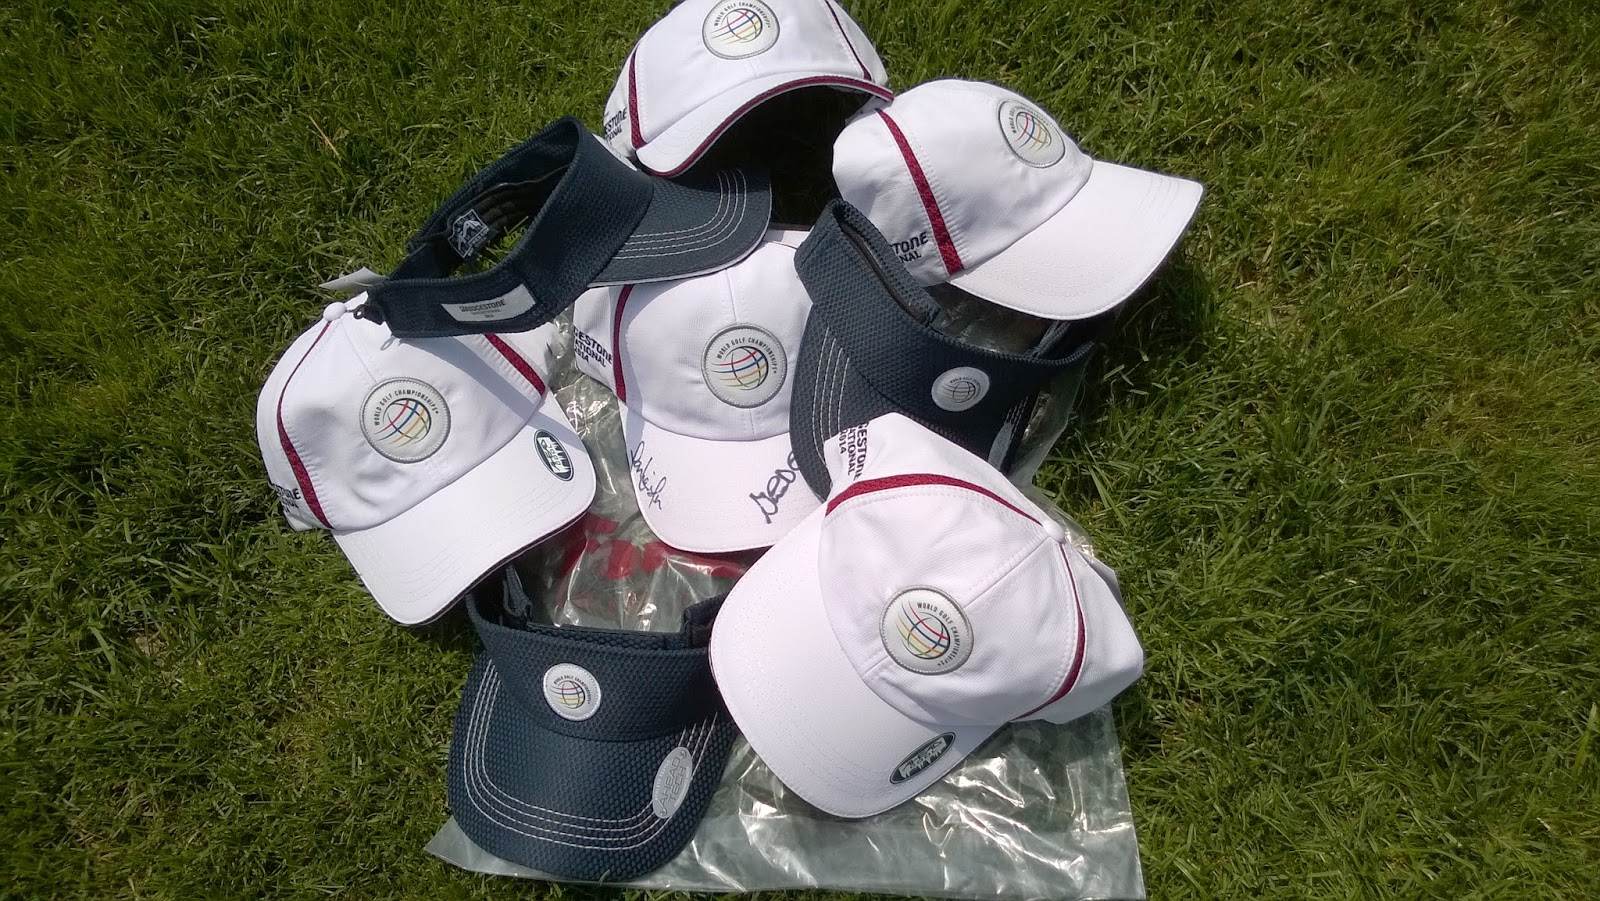 Every day this week I'll be giving away WGC-Bridgestone caps or visors to one my twitter followers. We'll have four total winners, one each day Monday ...